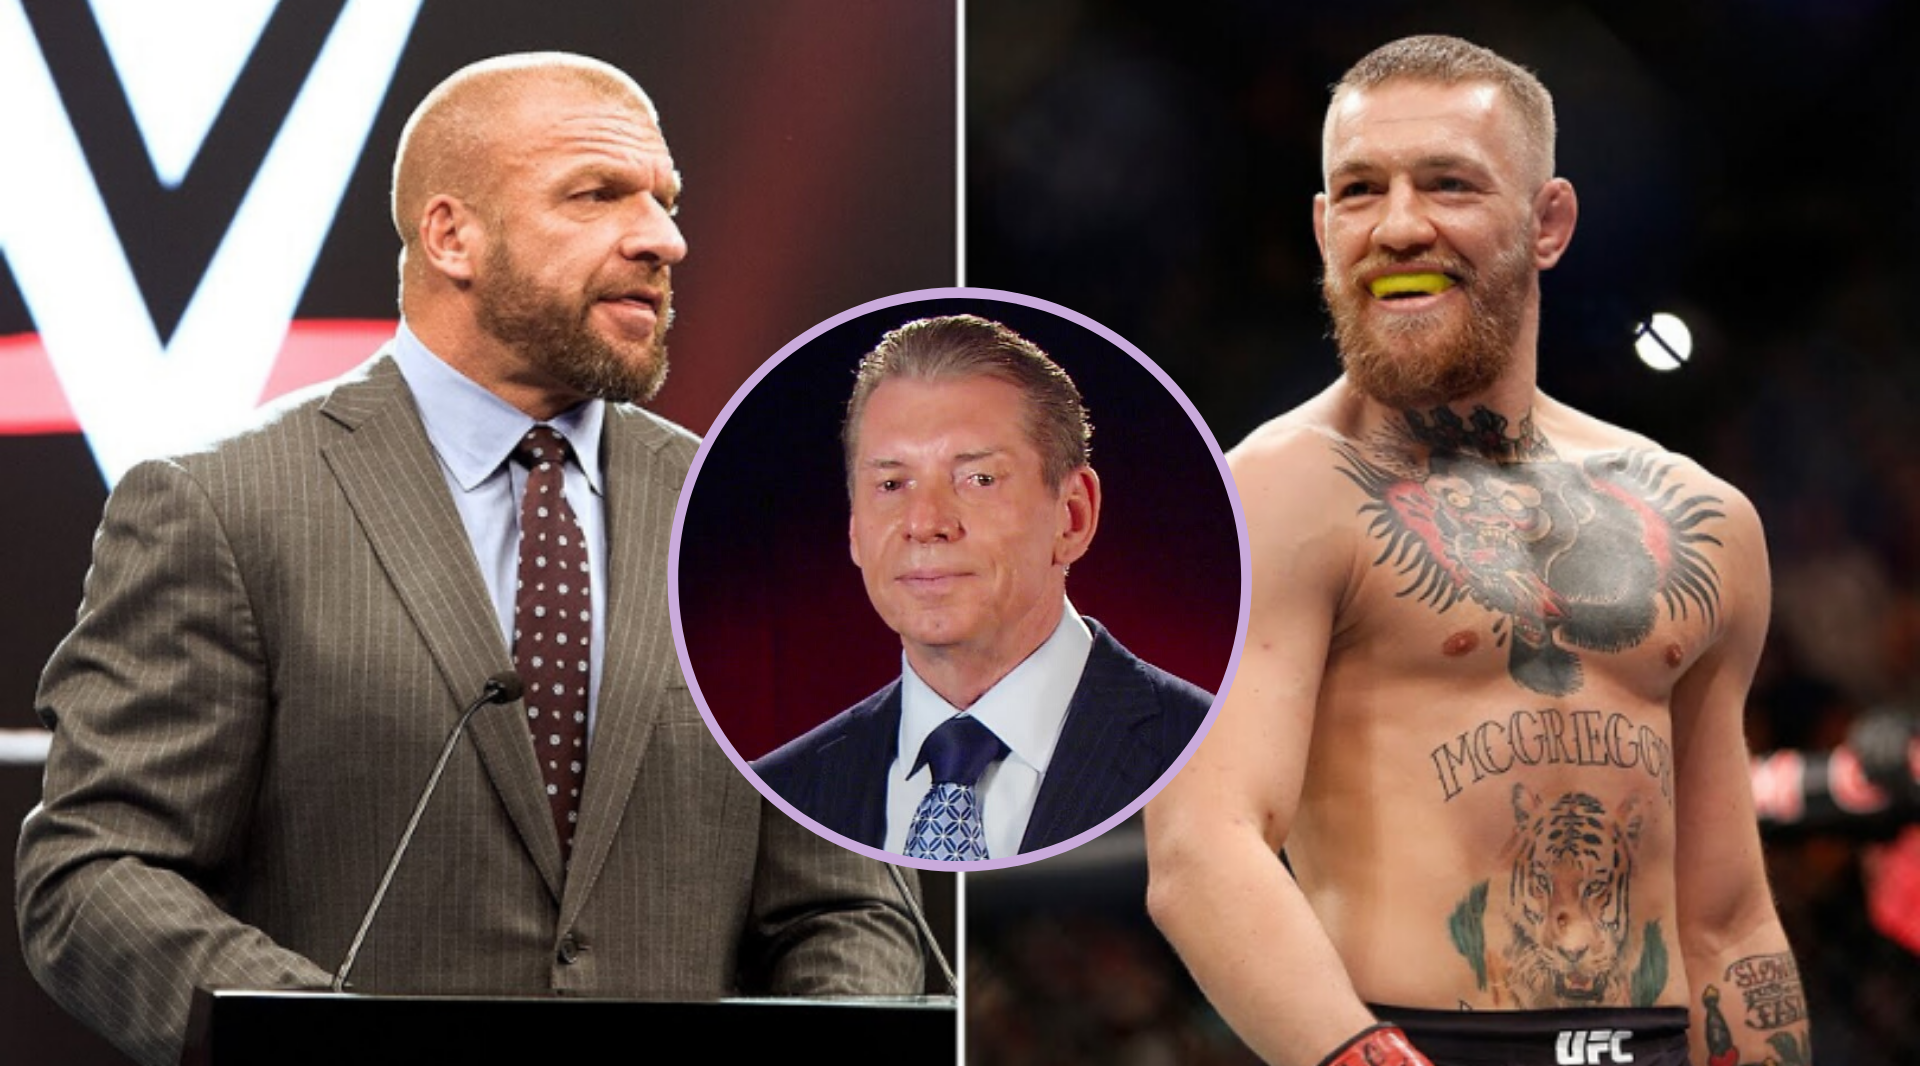 Triple H: Conor McGregor vs Vince McMahon in WWE will be a match made in heaven! - Triple H